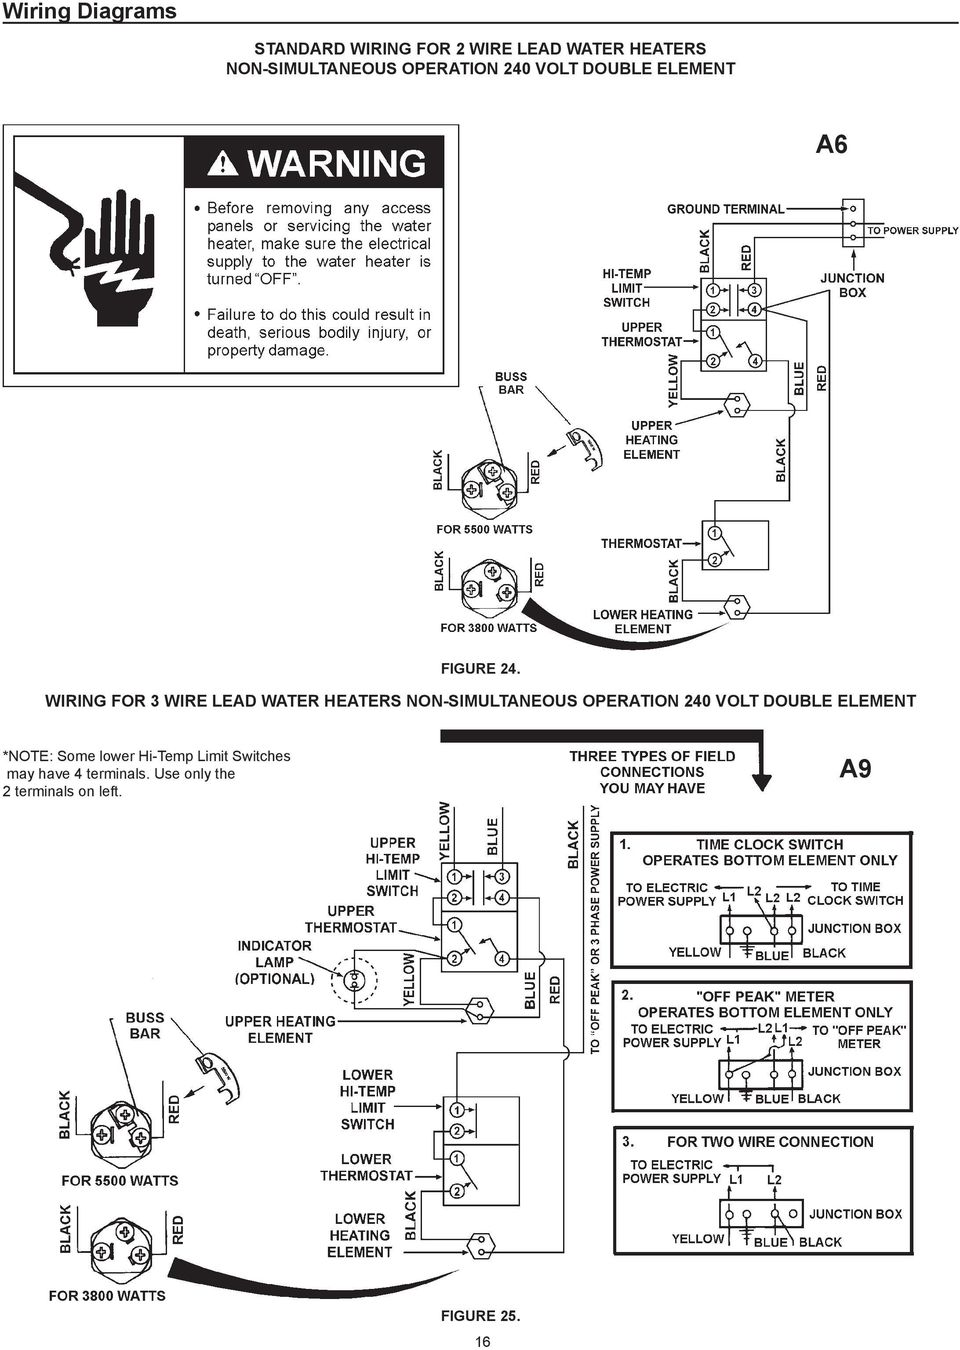 WIRING FOR 3 WIRE LEAD WATER HEATERS NON-SIMULTANEOUS OPERATION 240 VOLT DOUBLE